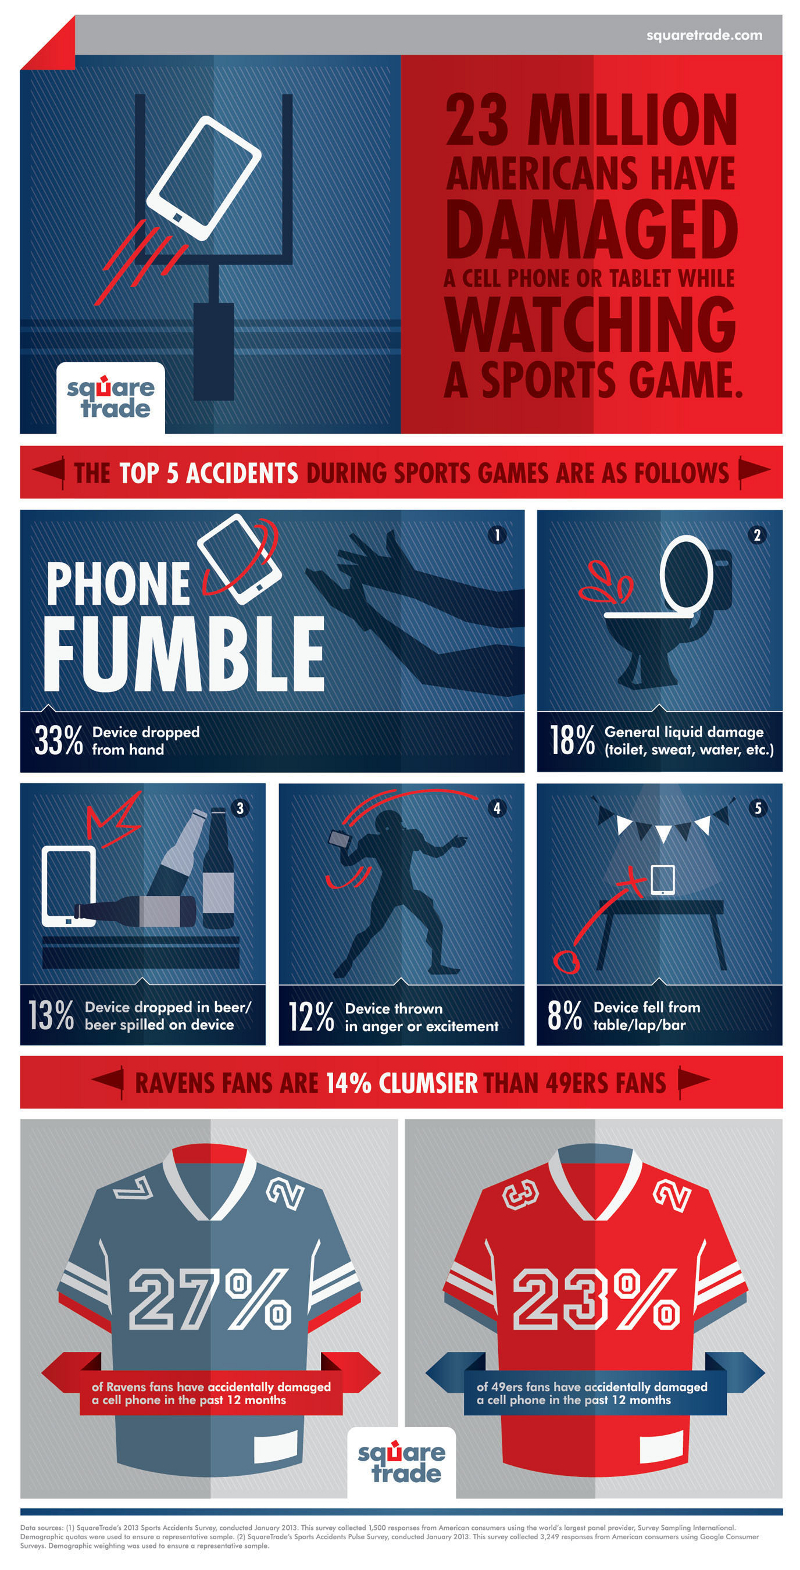 What Happens to Mobile Devices When Watching Sports